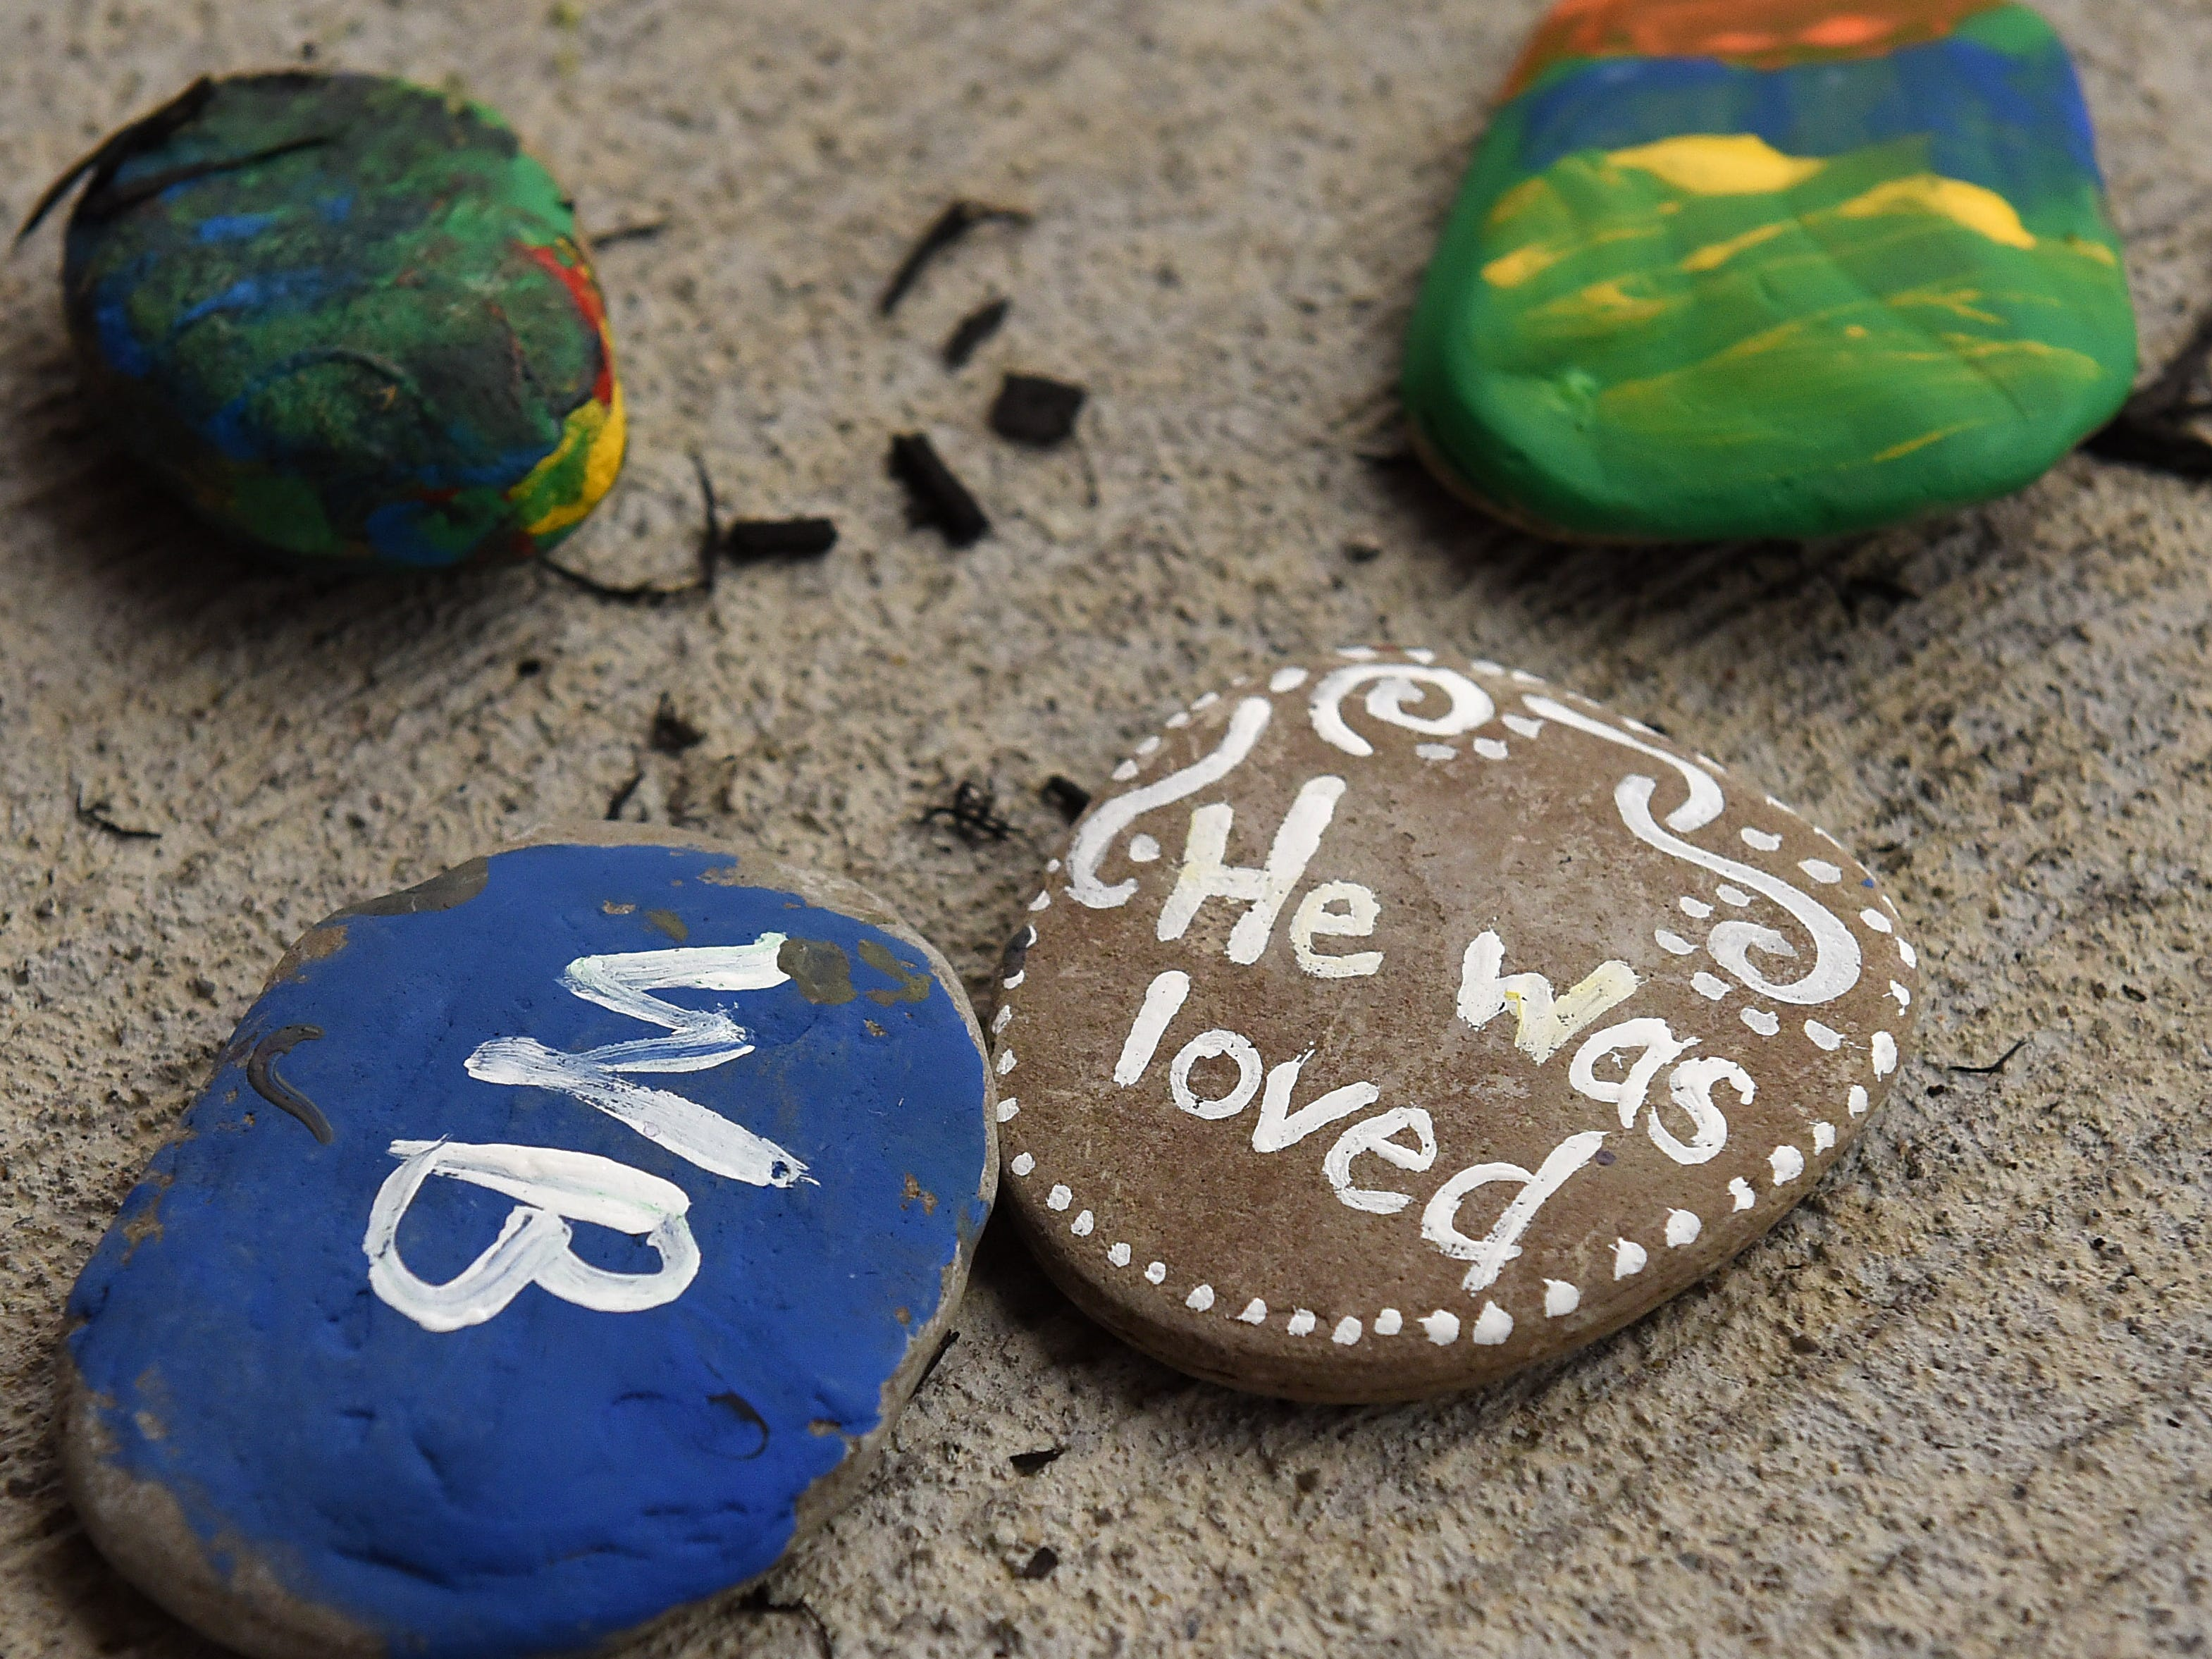 Painted rocks with words of encouragement and remembrance during Mental Health America of Licking County's suicide prevention walk and candlelight vigil on Tuesday, Sept. 11, 2018 at the Canal Market District. The annual event is in recognition of September being Suicide Prevention Awareness month. The event is sponsored by MHA, Licking County Suicide Prevention Coalition, Survivors After Suicide Loss Support Group, and Mental Health & Recovery for Licking and Knox Counties. The Survivors After Suicide Loss Support Group meets at 6:30 p.m. the second Tuesday of every month at Mental Health America of Licking County, 65 Messimer Dr. in Newark.